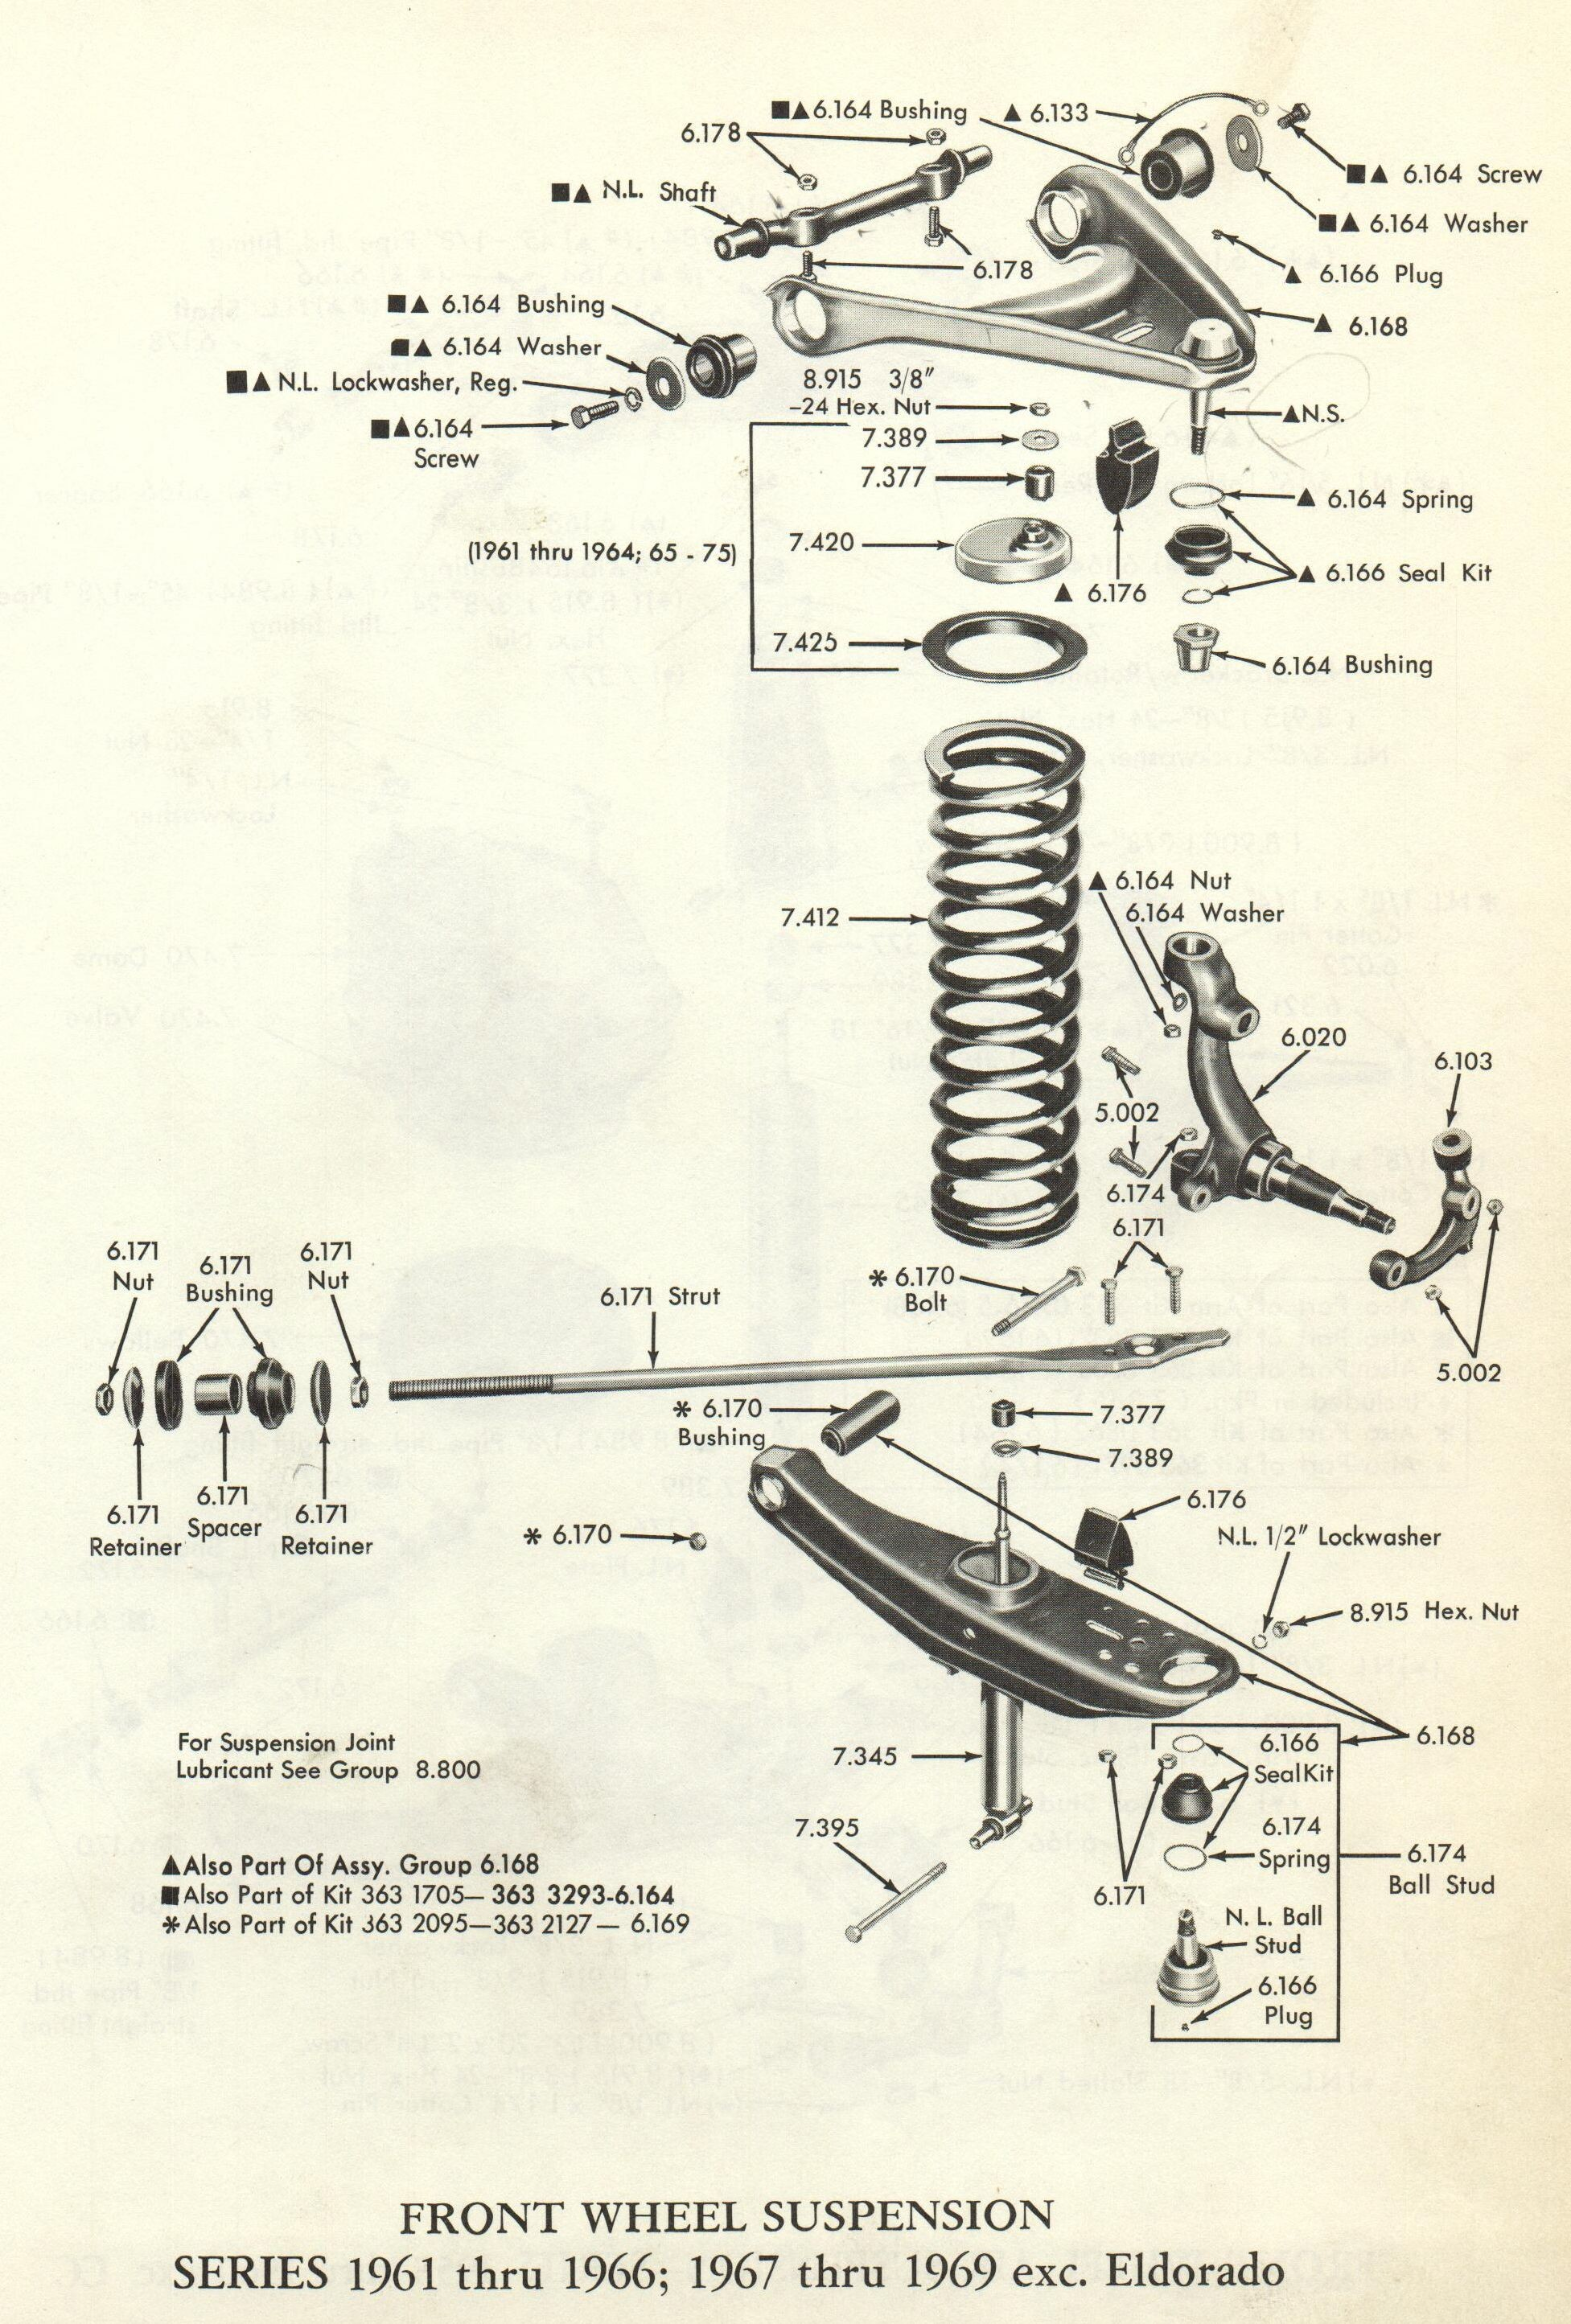 1964 Cadillac Wiring Diagram Collection - Wiring Diagram ...